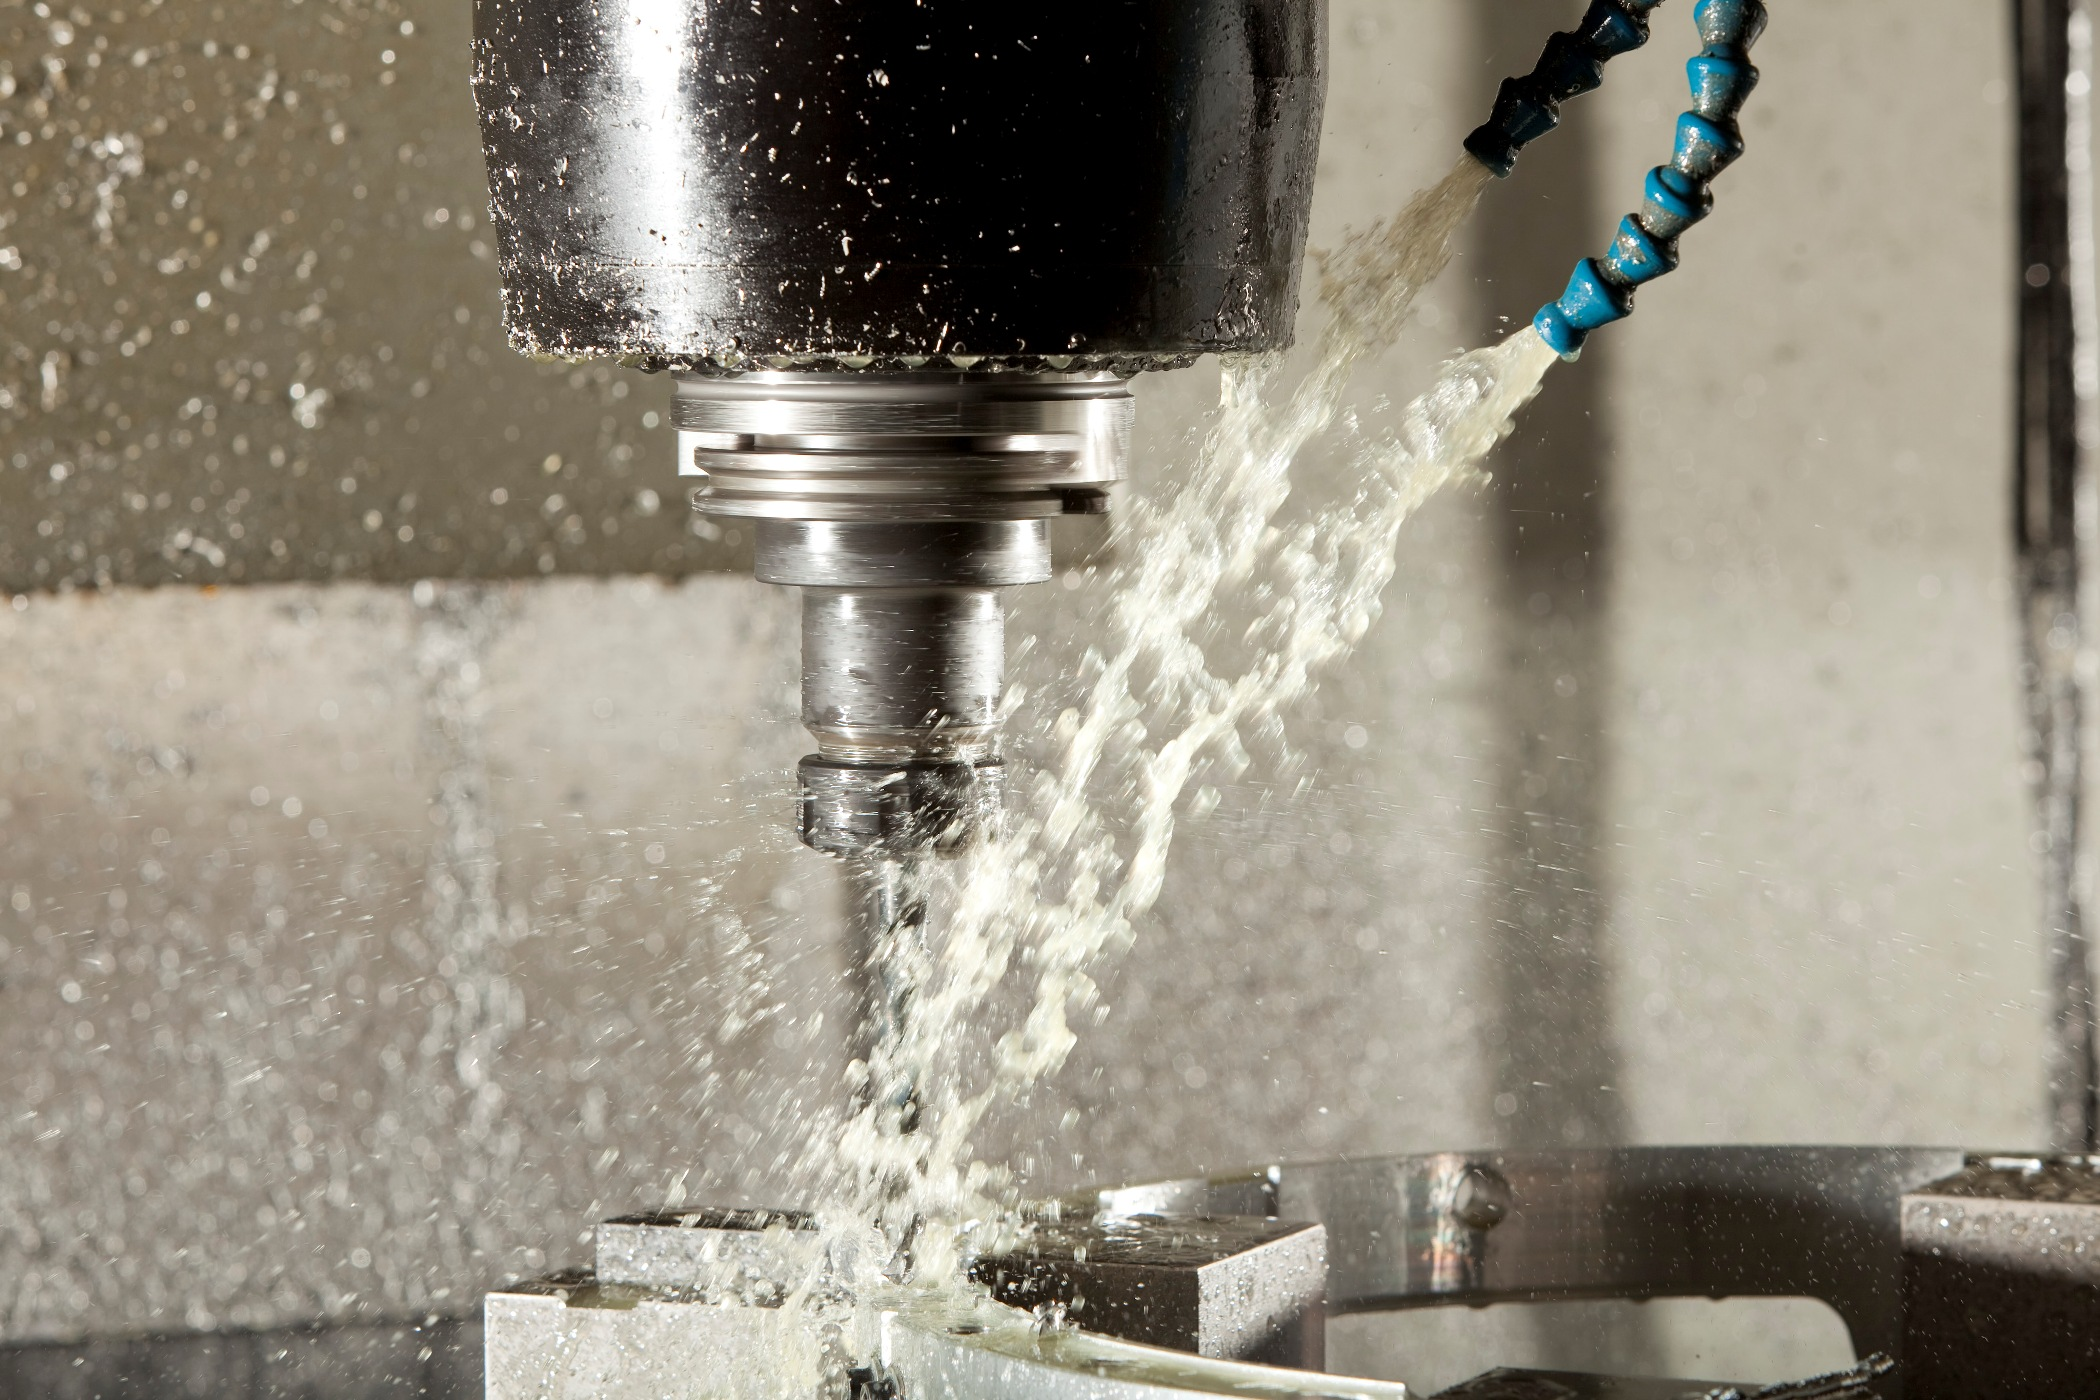 Cutting fluids and lubrication in manufacturing